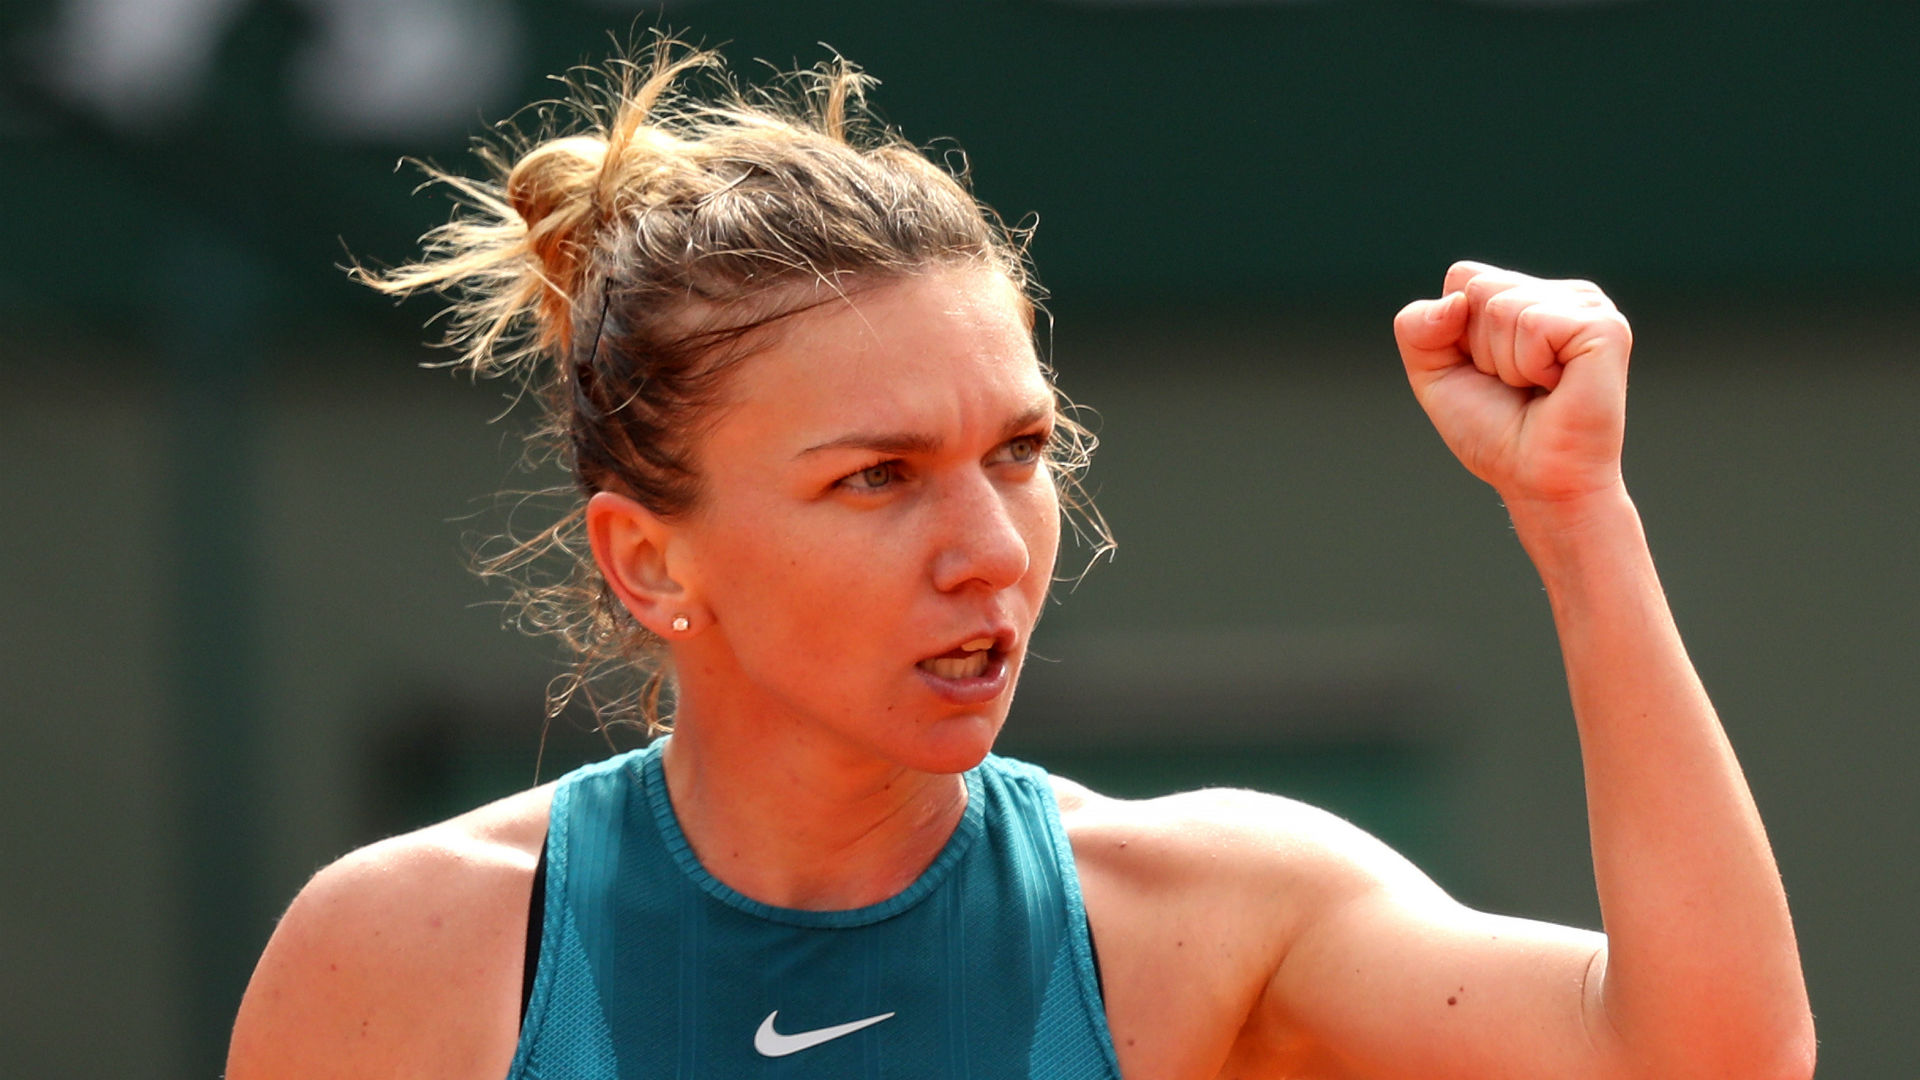 French Open 2018 women's final: Recapping Simona Halep's comeback win against Sloane Stephens ...